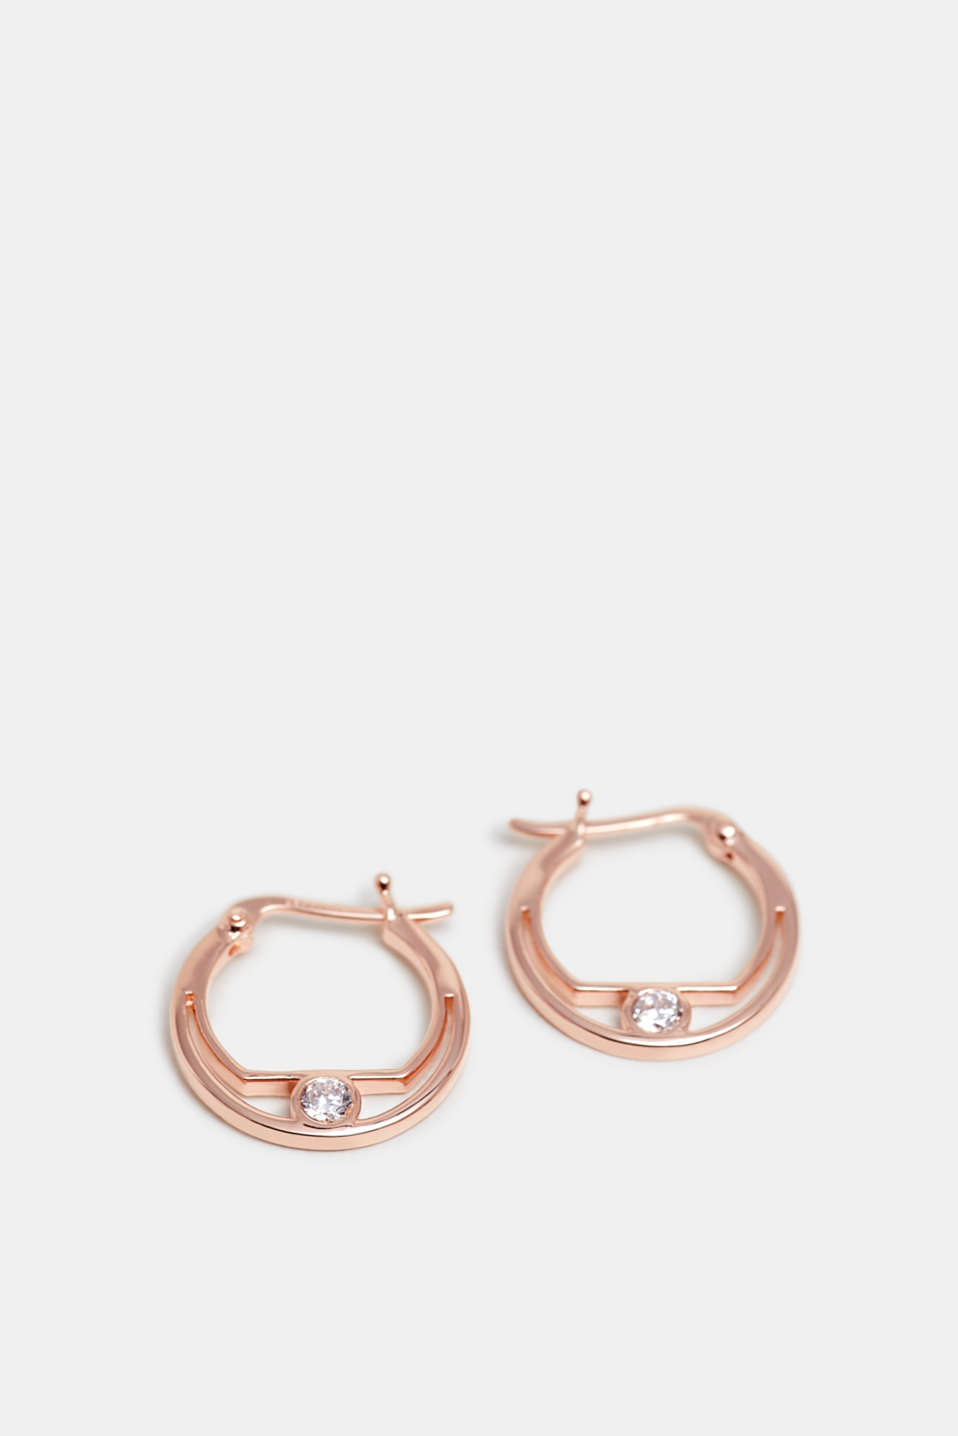 Zirconia-trimmed earring, sterling silver, ROSEGOLD, detail image number 0